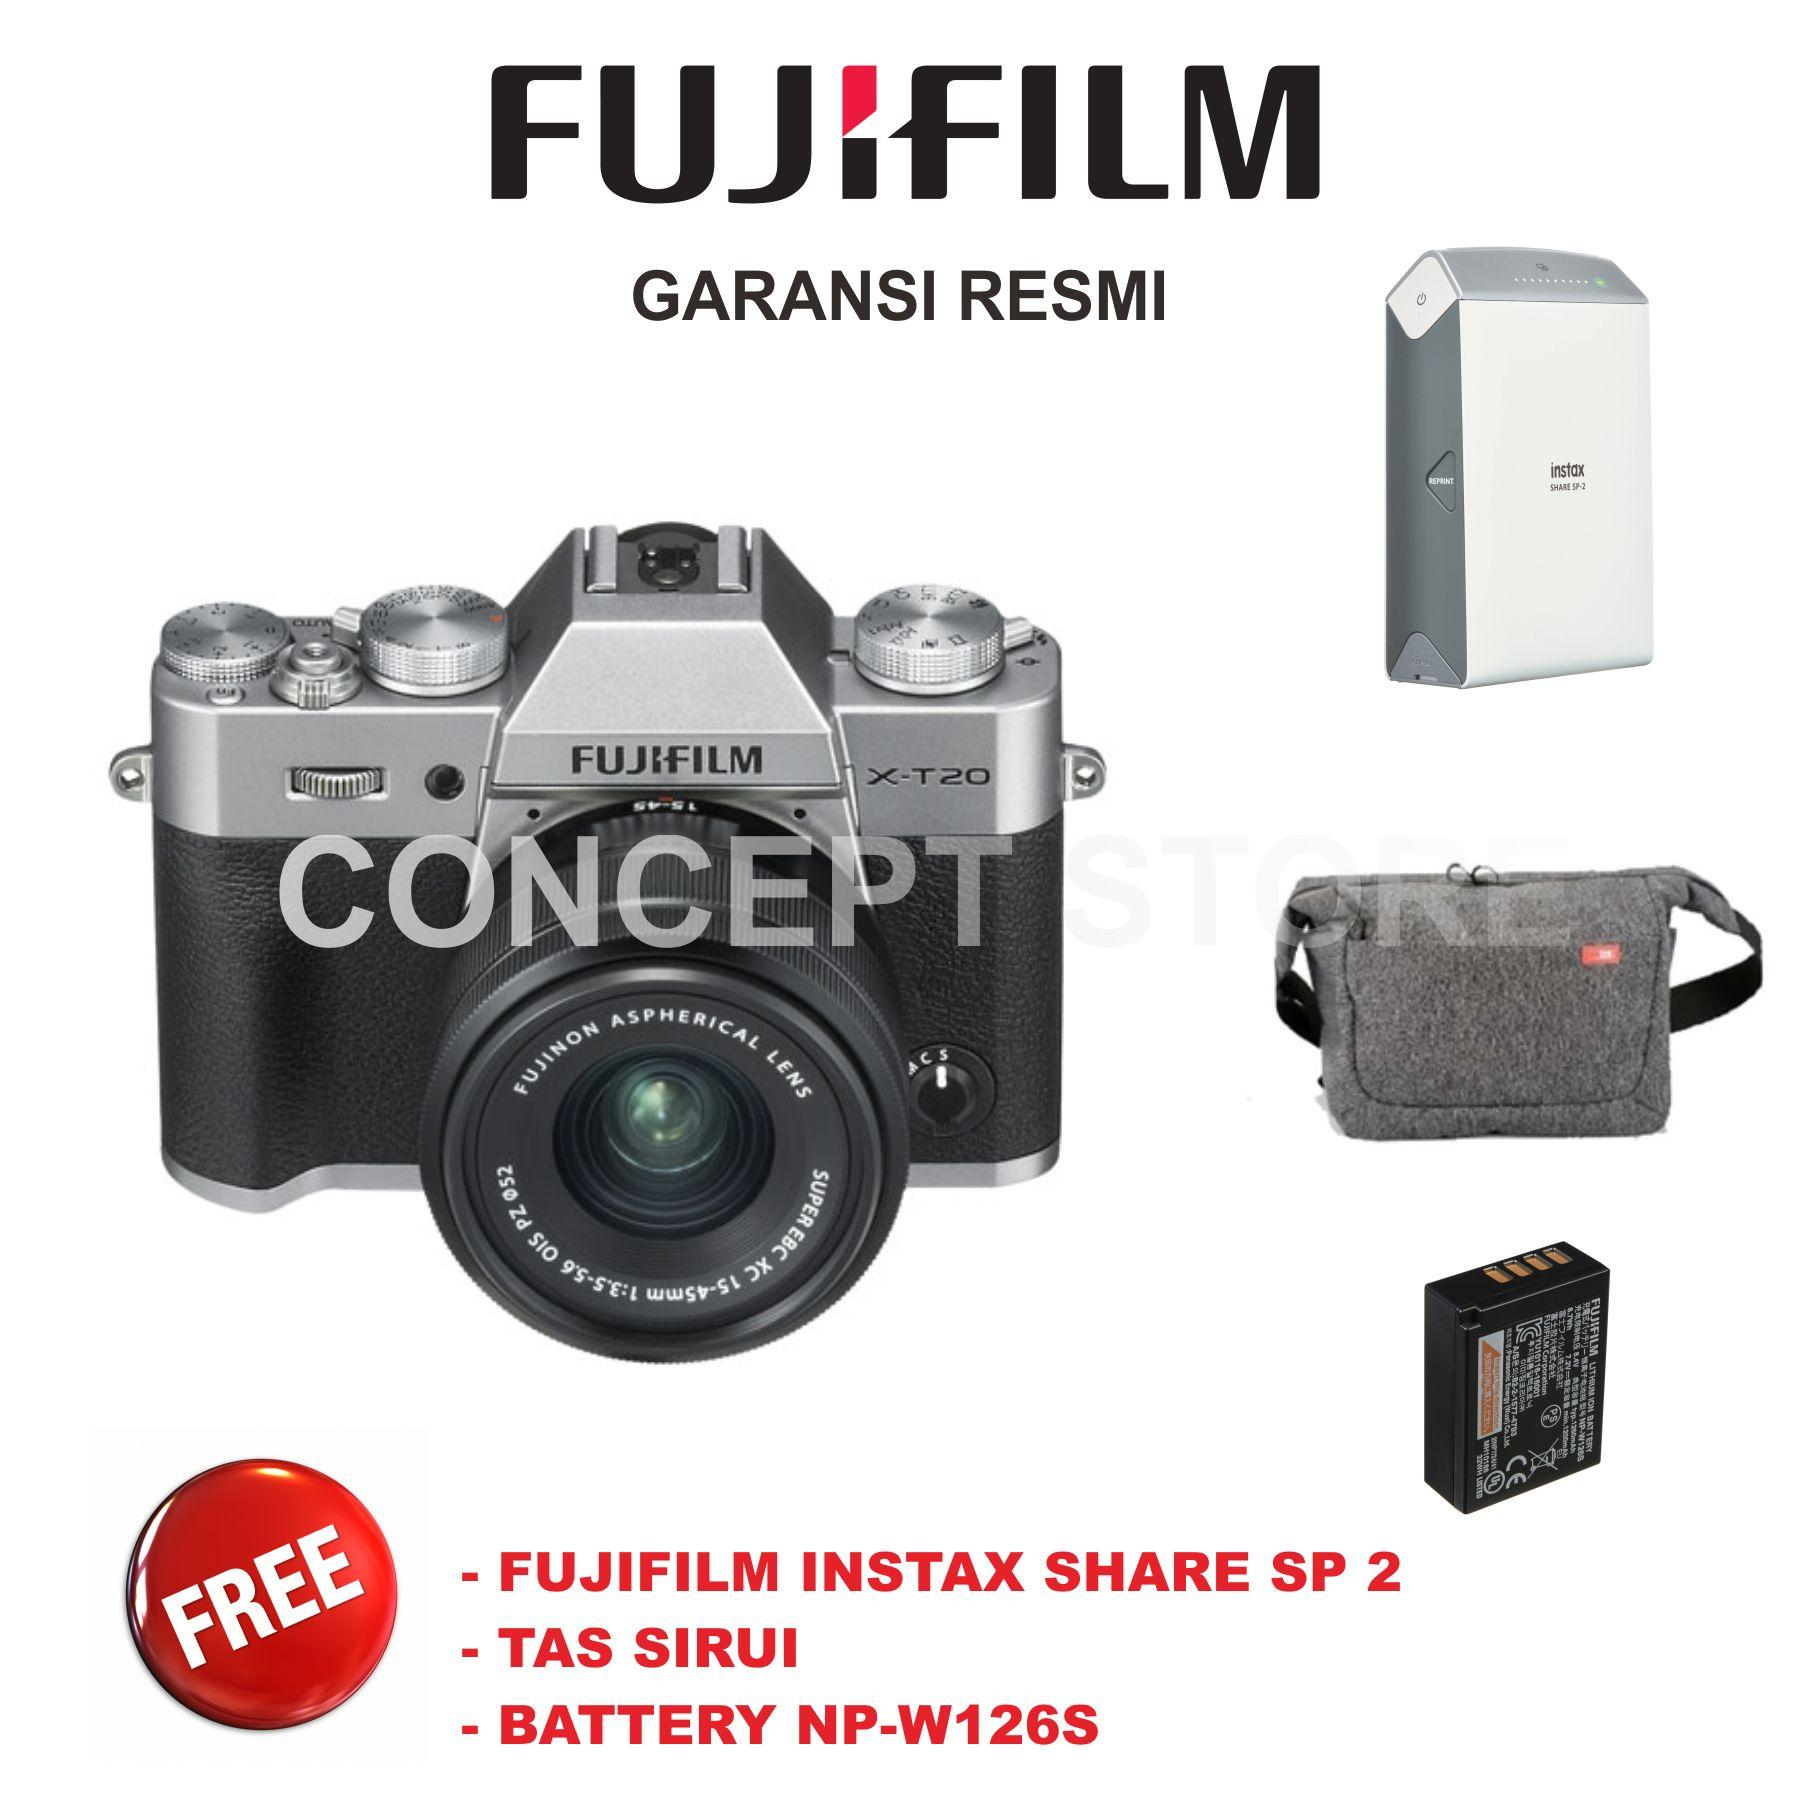 Fujifilm Xt 20 Mirrorless Camera With Kit Xc 18 55mm Hitam Instax X A5 15 45mm F35 56 Ois Pz Dark Silver Pwp Xf 50mm F2 45 Mm Xt20 T20